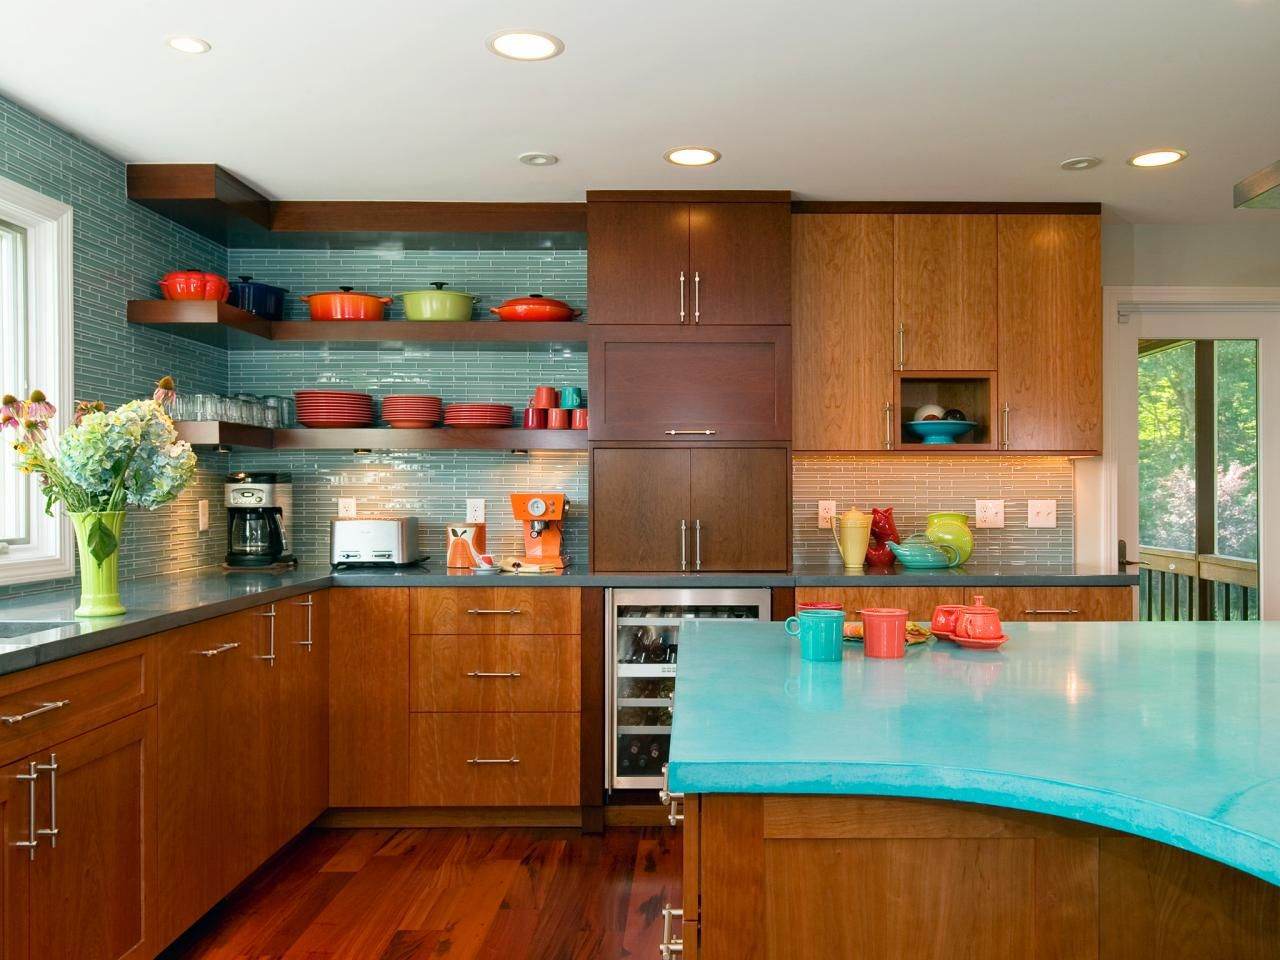 End Of Kitchen Cabinet Ideas To Give This Warm Woodsy Kitchen An Energetic Mid Century Modern